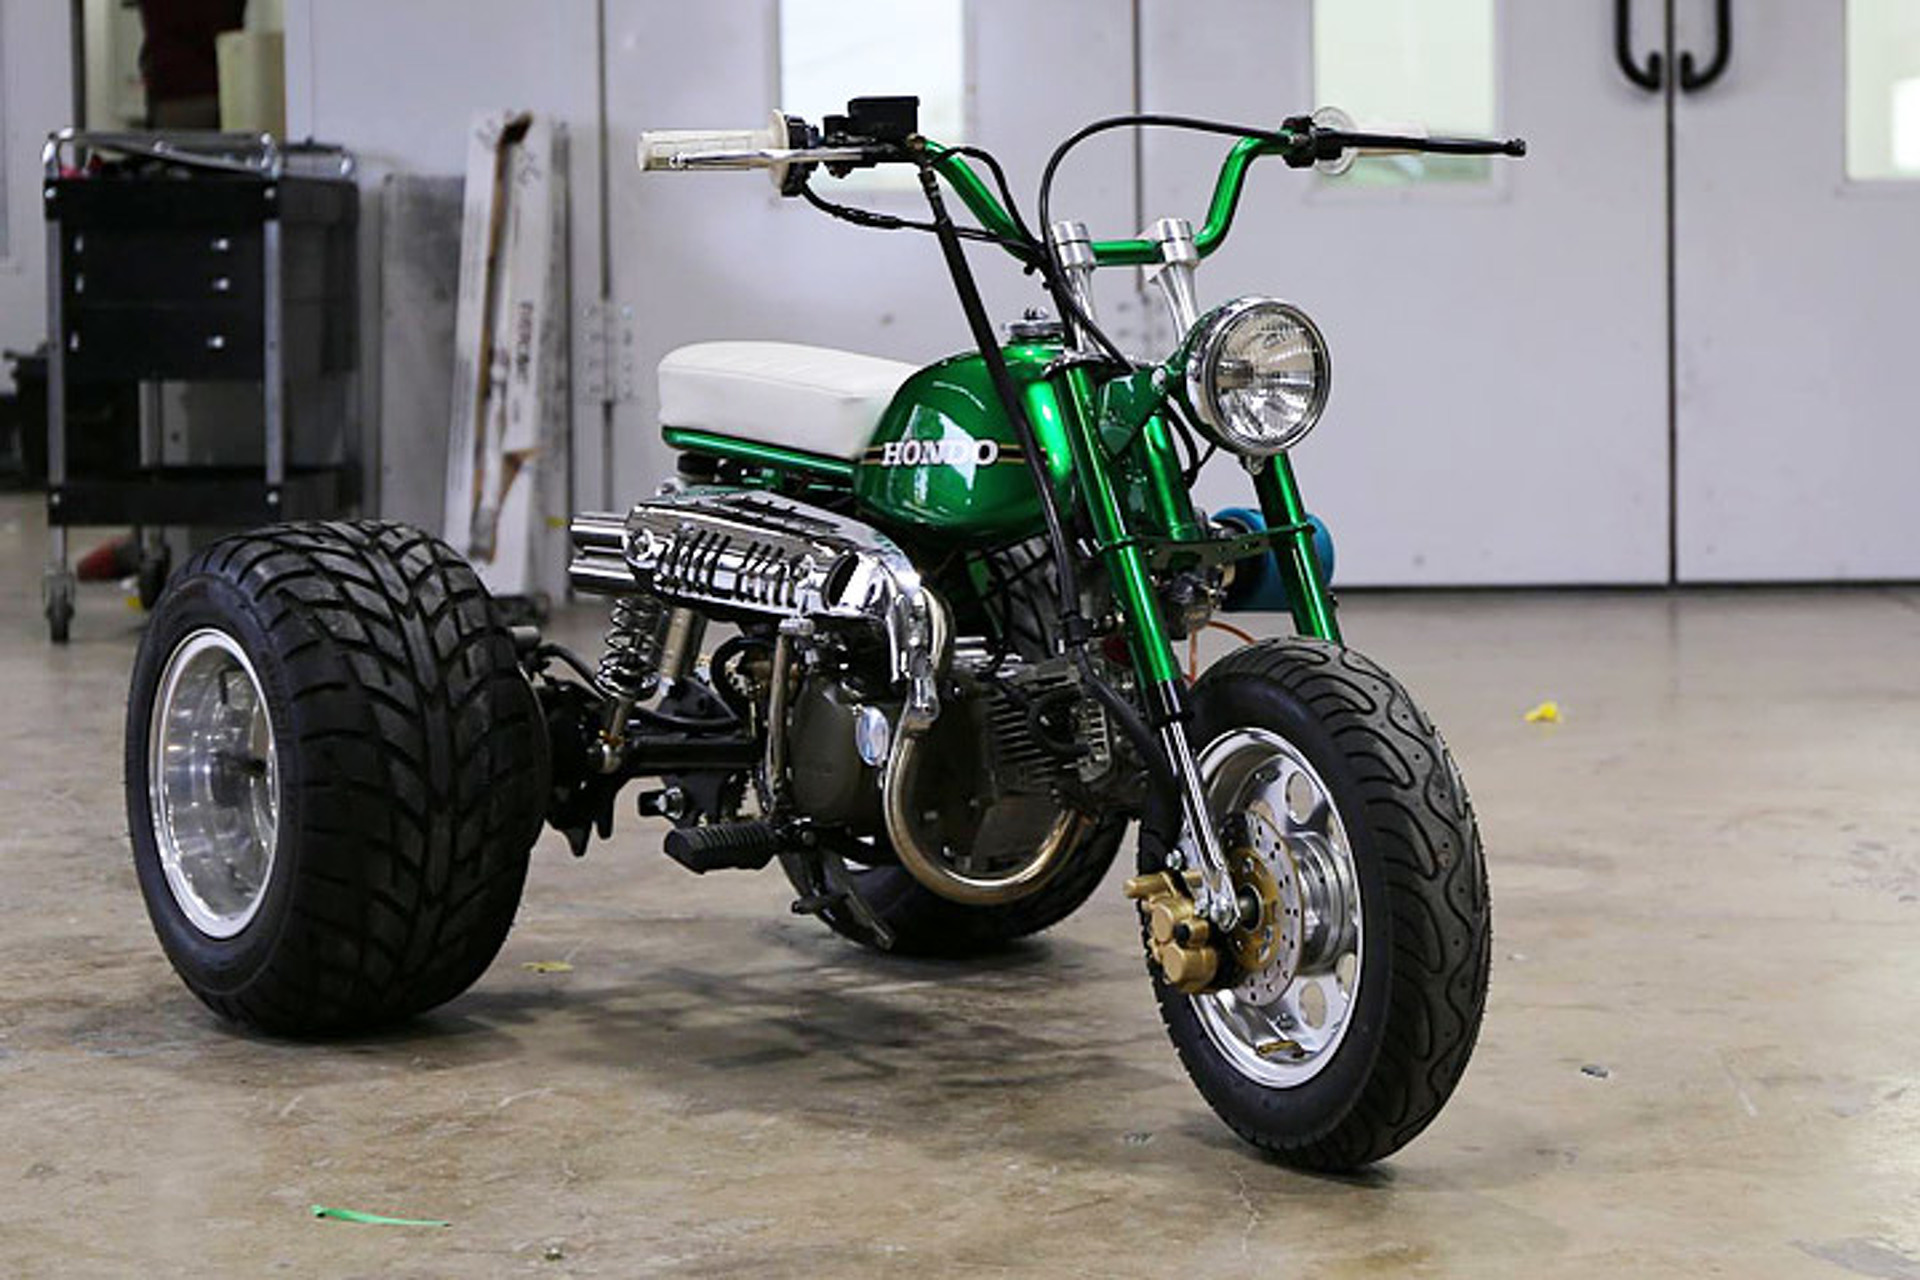 Gas Monkey Garage s Mean Green ldquo HONDO rdquo Trike is Up for Sale